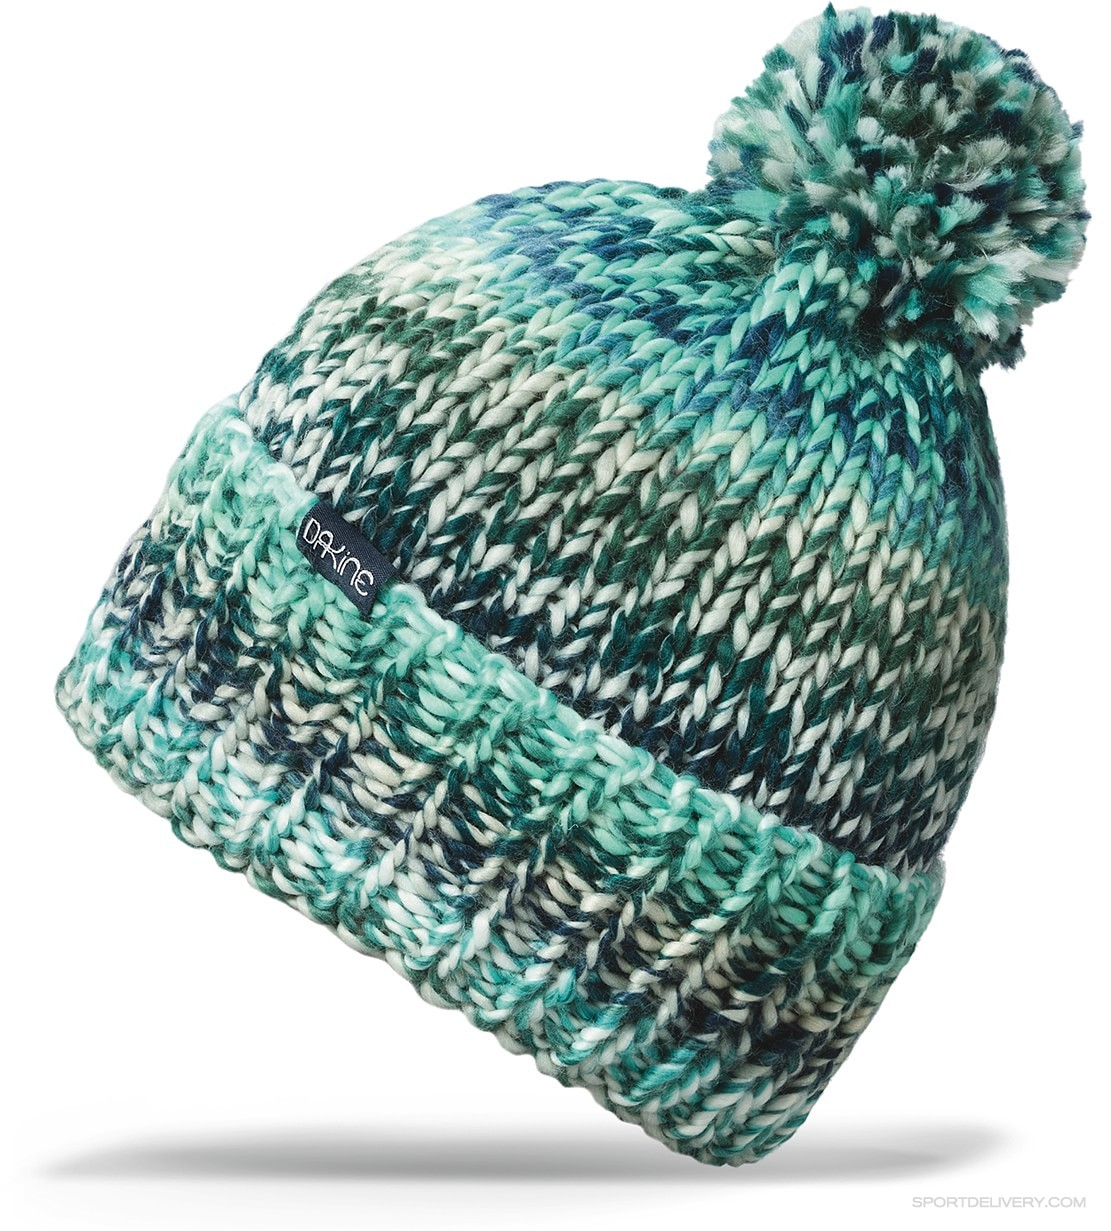 645d5a891b9 dakine JADE - beanies - Sport Delivery shop